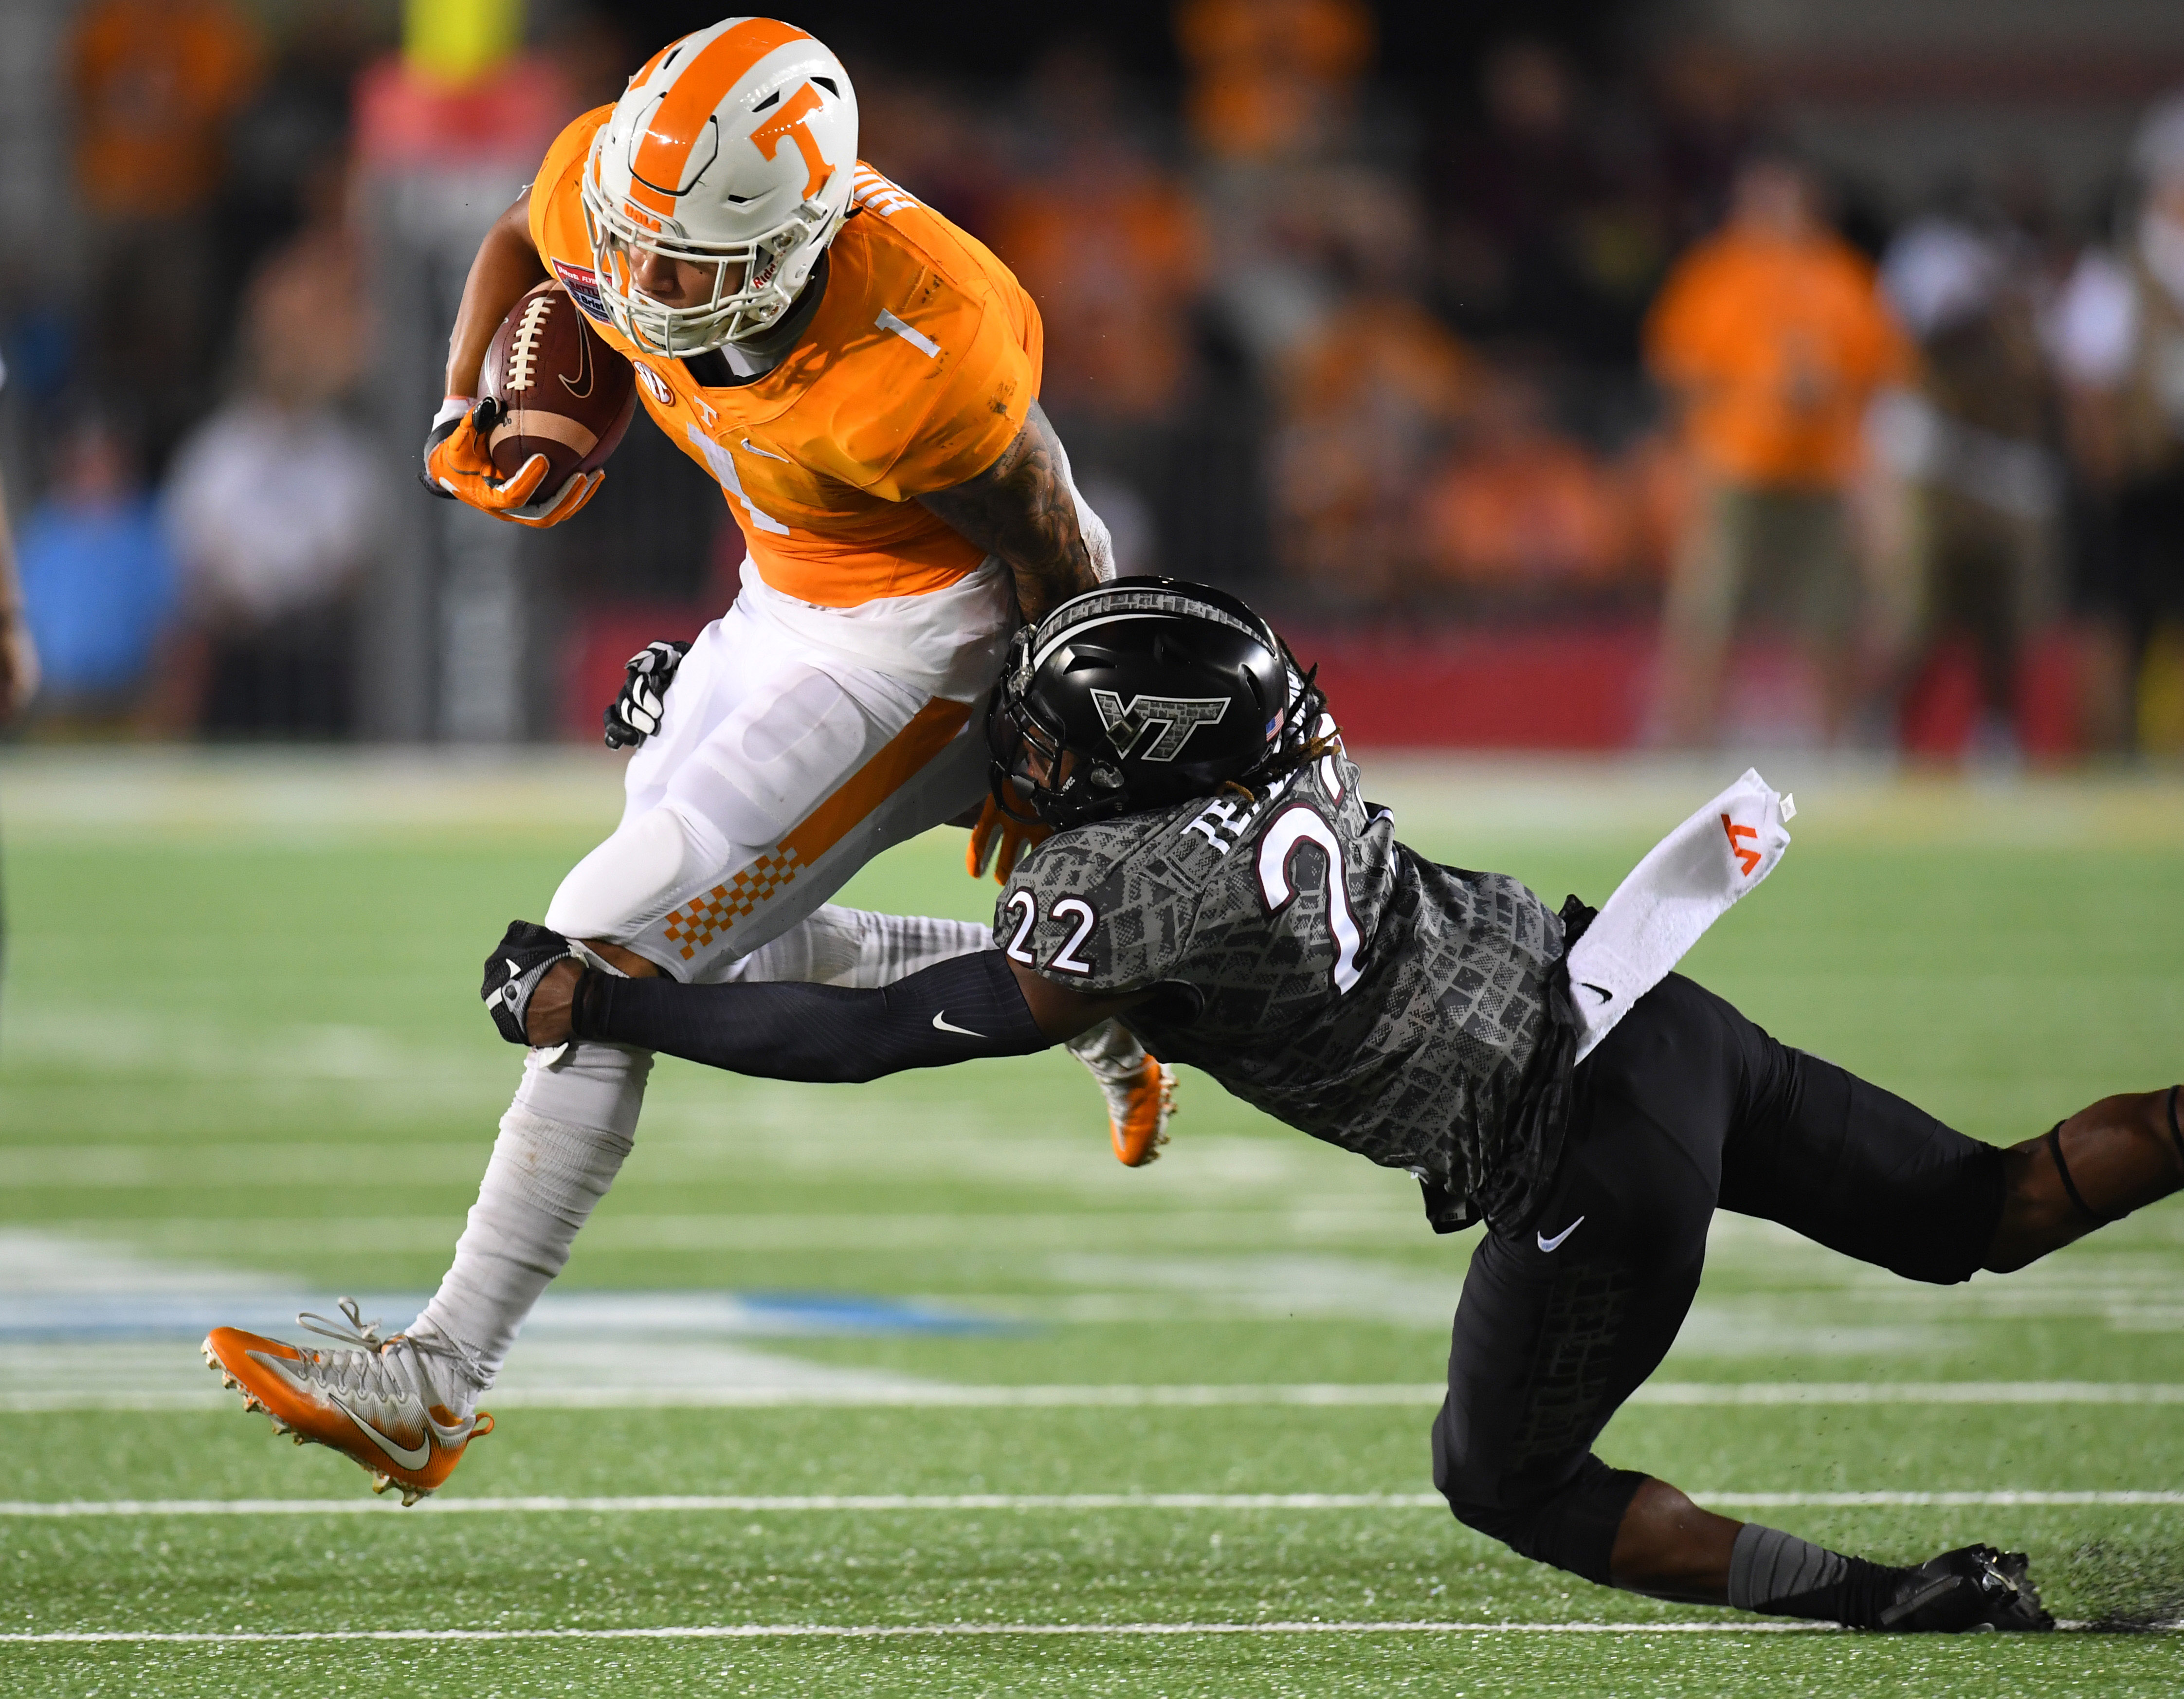 Sep 10, 2016; Bristol, TN, USA; Tennessee Volunteers running back Jalen Hurd (1) runs for a short gain while being tackled by Virginia Tech Hokies defensive back Terrell Edmunds (22) during the first half at Bristol Motor Speedway. Mandatory Credit: Christopher Hanewinckel-USA TODAY Sports